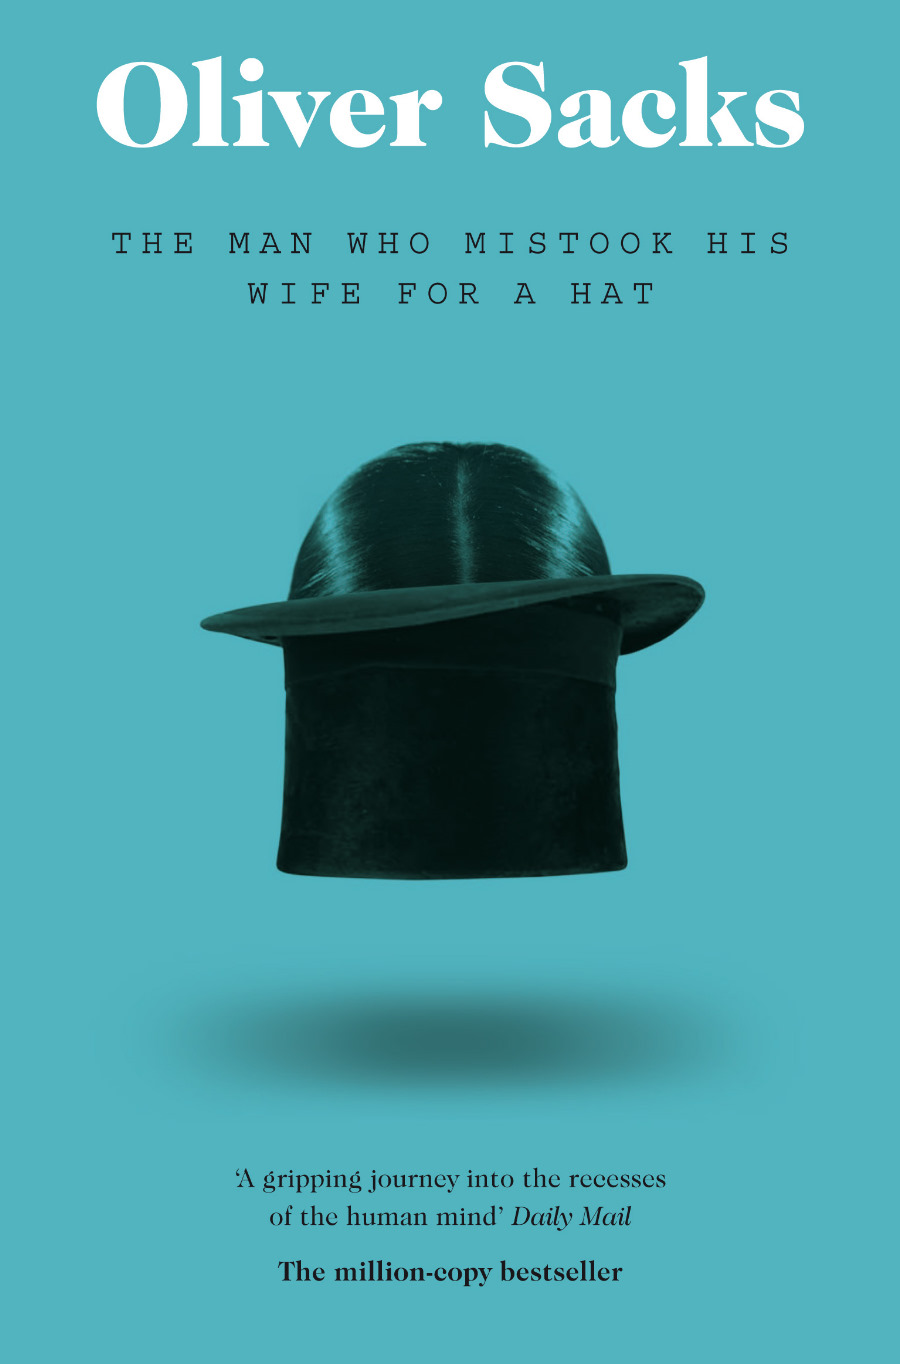 Cover Art for The Man Who Mistook His Wife for a Hat, ISBN: 9780330523622